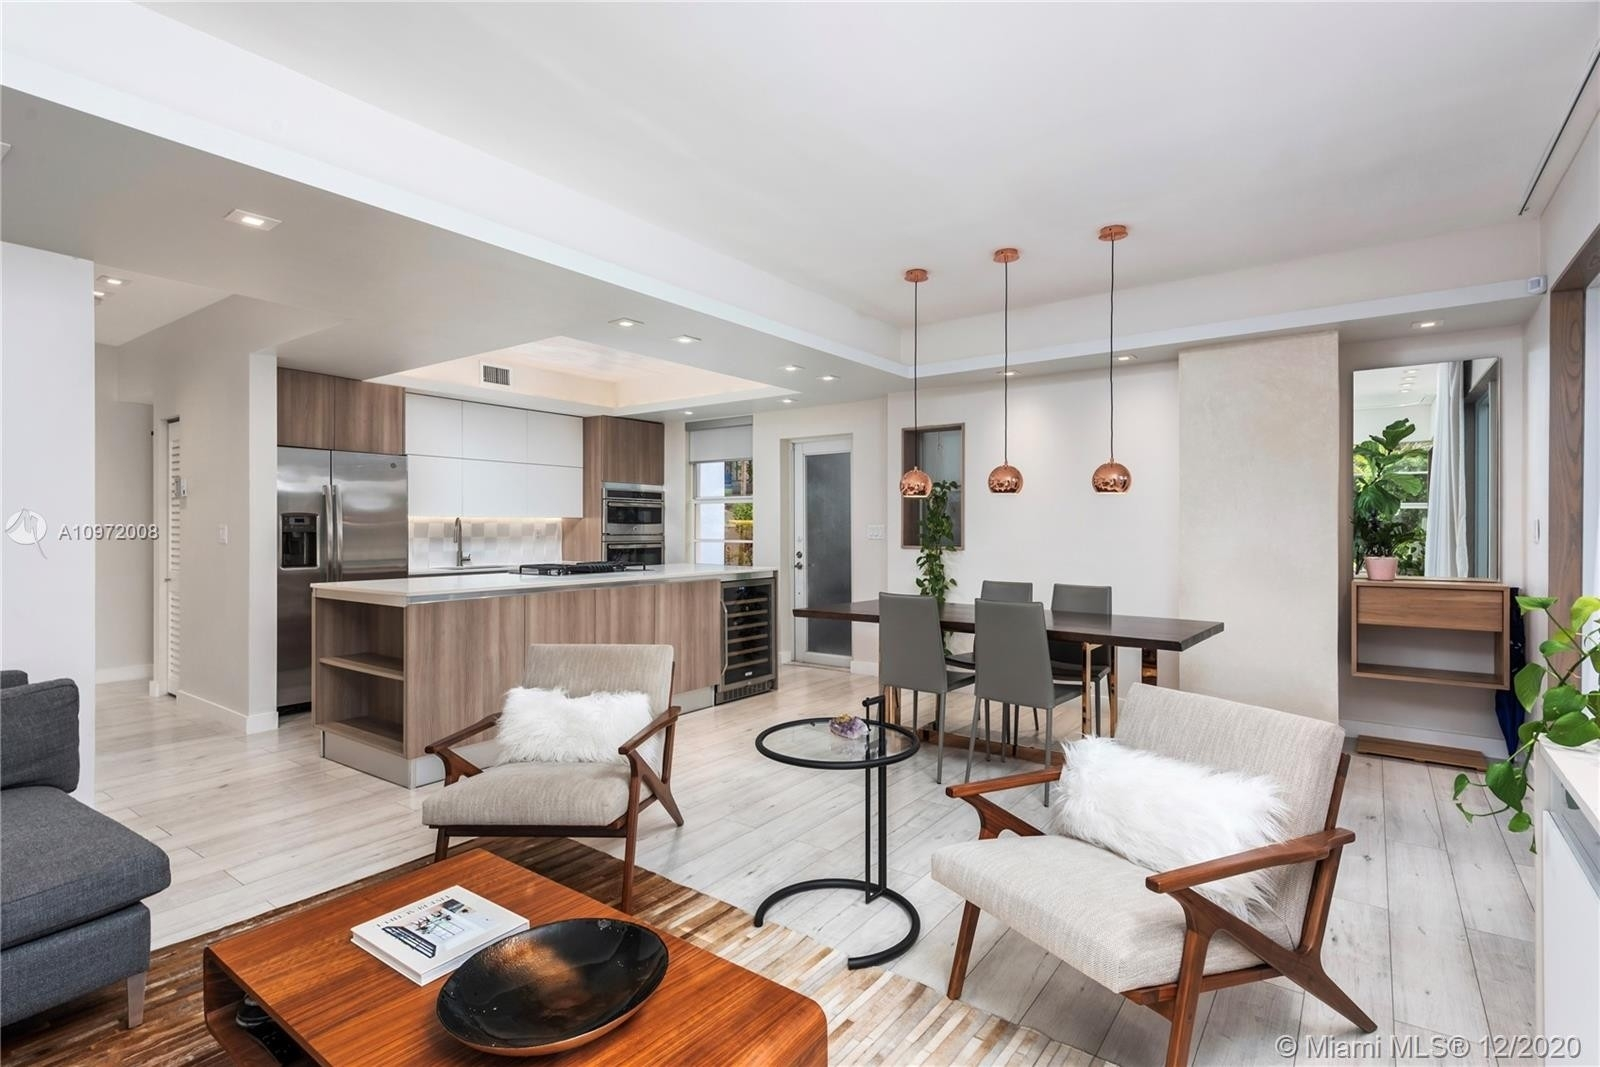 2. Condominiums for Sale at 1435 West Ave , 1 South Beach, Miami Beach, FL 33139